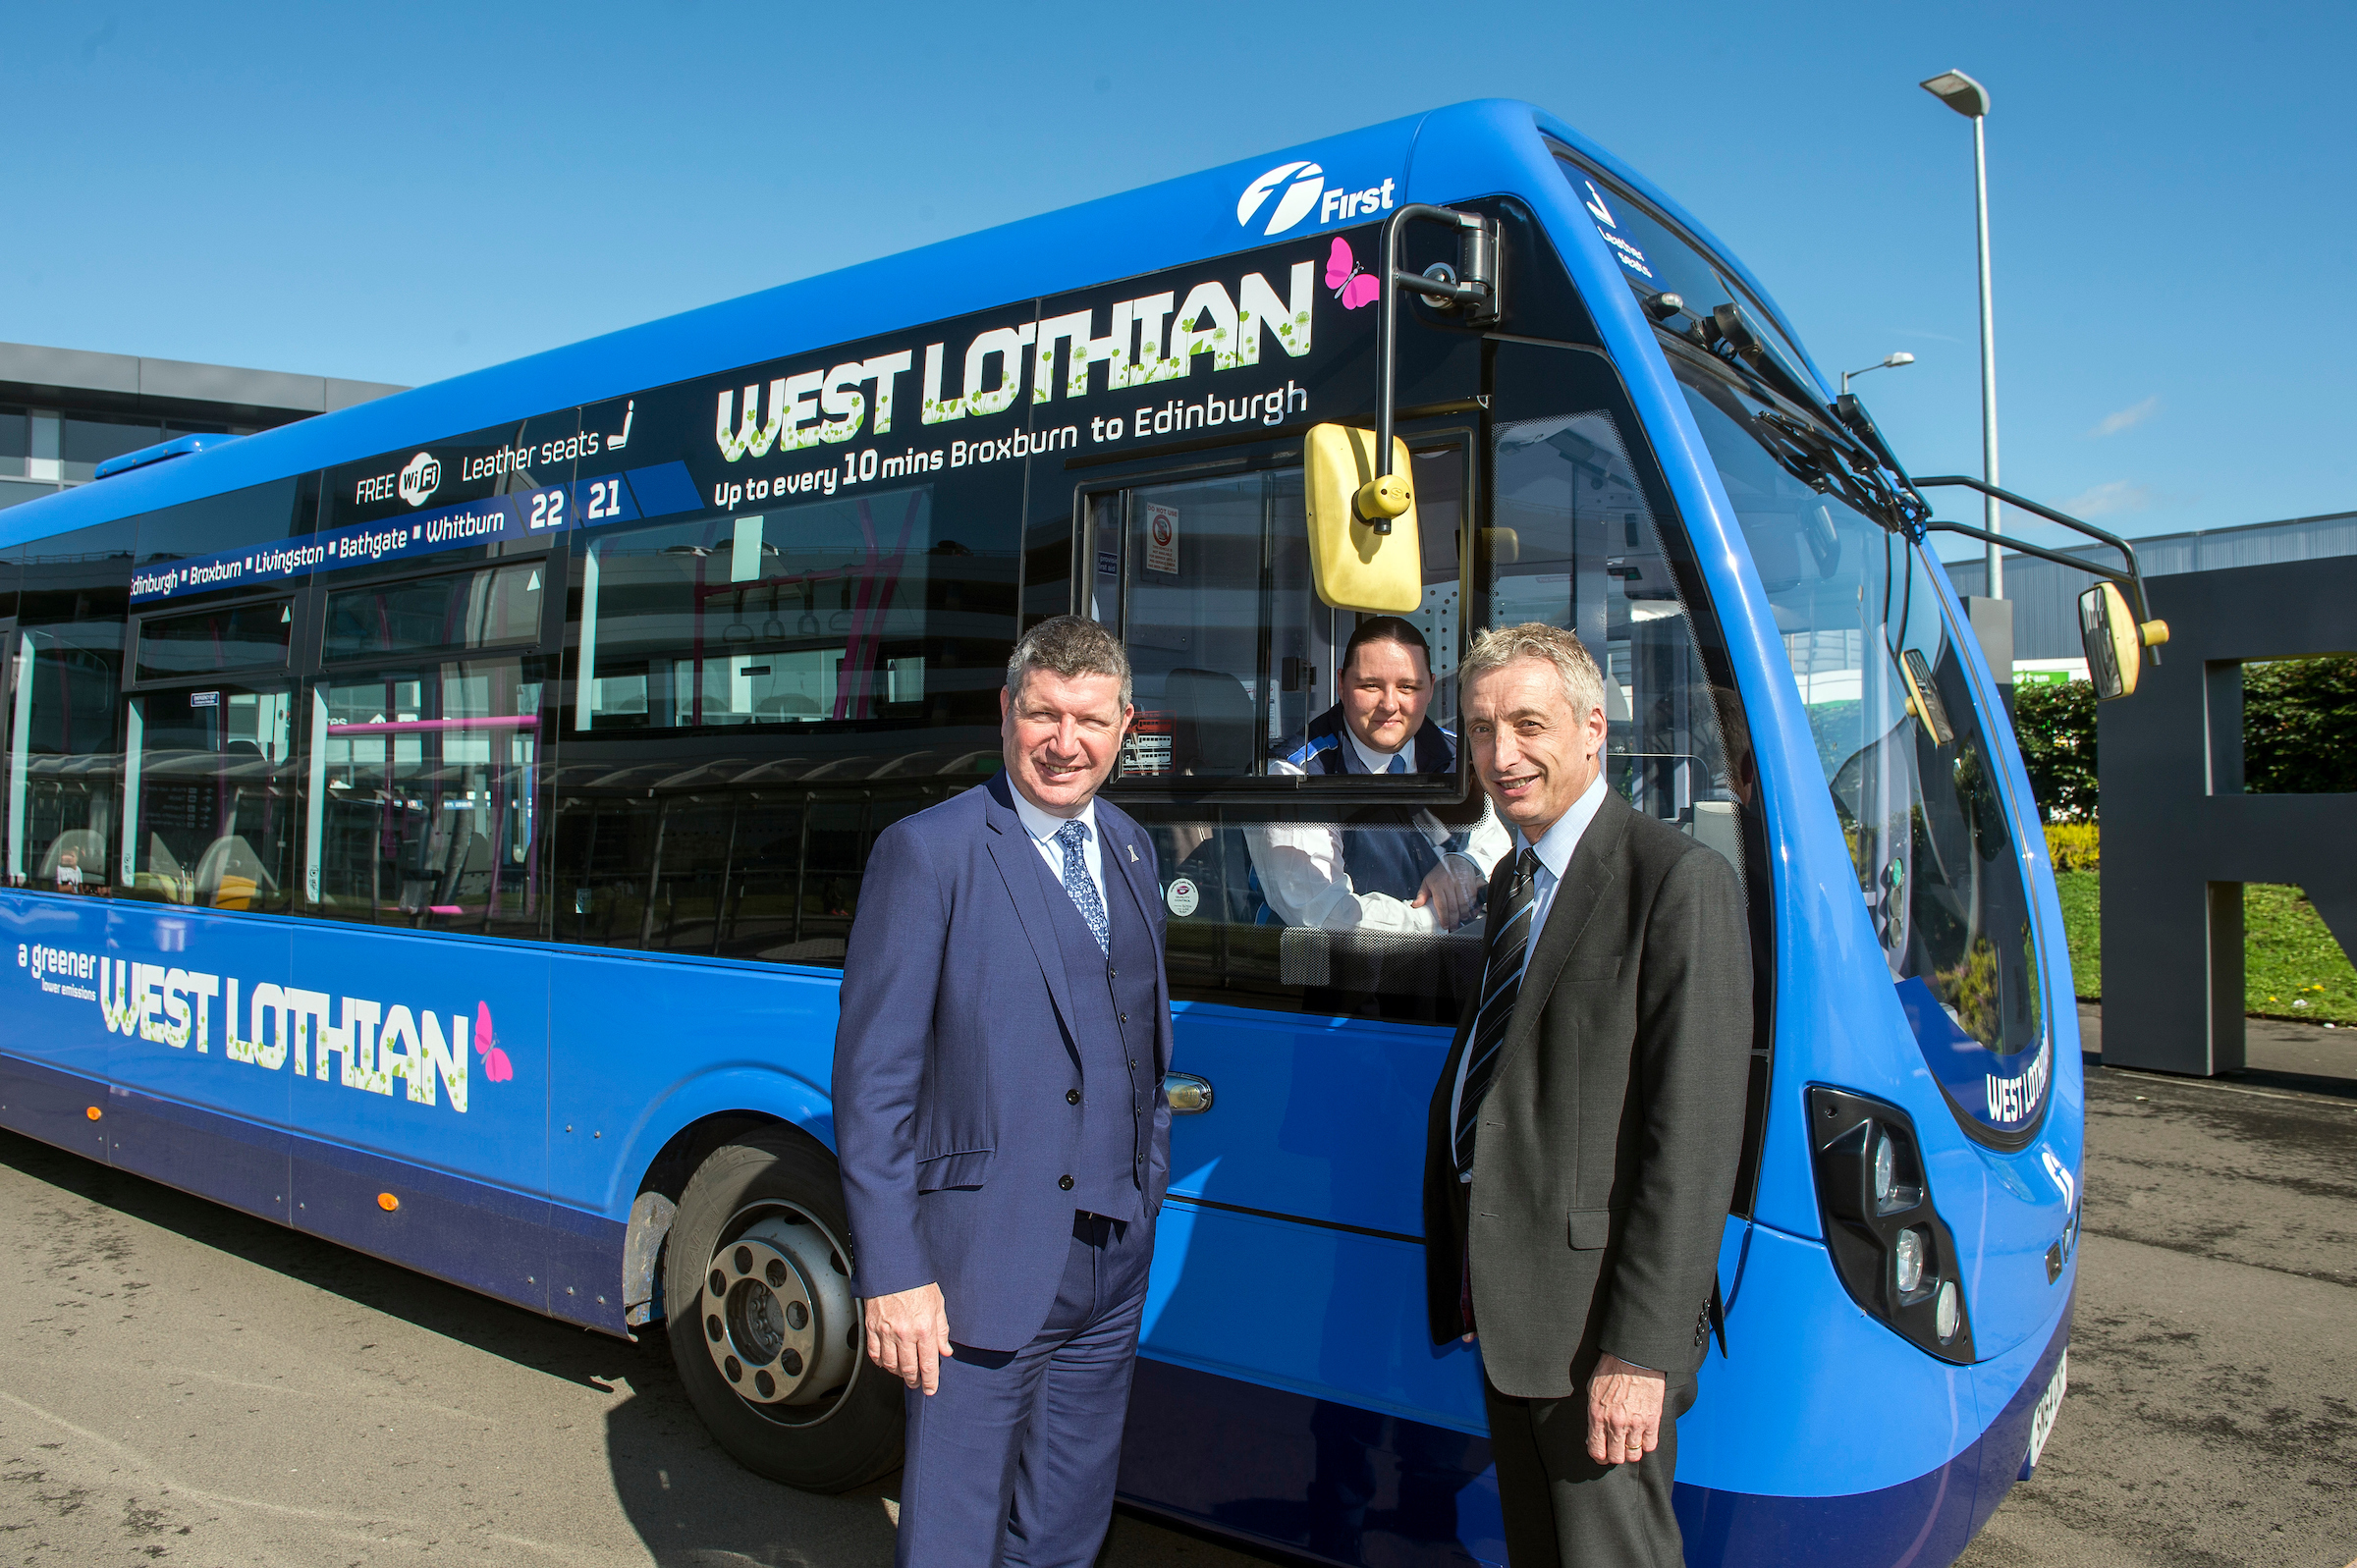 "FREE FIRST USE First West Lothian launch their Service 21A, ""Connecting West Lothian to the World"" with Edinburgh Airport CEO Gordon Dewar and First Scotland East MD Paul McGowan. Lenny Warren / Warren Media 07860 830050 01355 229700 lenny@warrenmedia.co.uk www.warrenmedia.co.uk All images © Warren Media 2017. Free first use only for editorial in connection with the commissioning client's press-released story. All other rights are reserved. Use in any other context is expressly prohibited without prior permission."